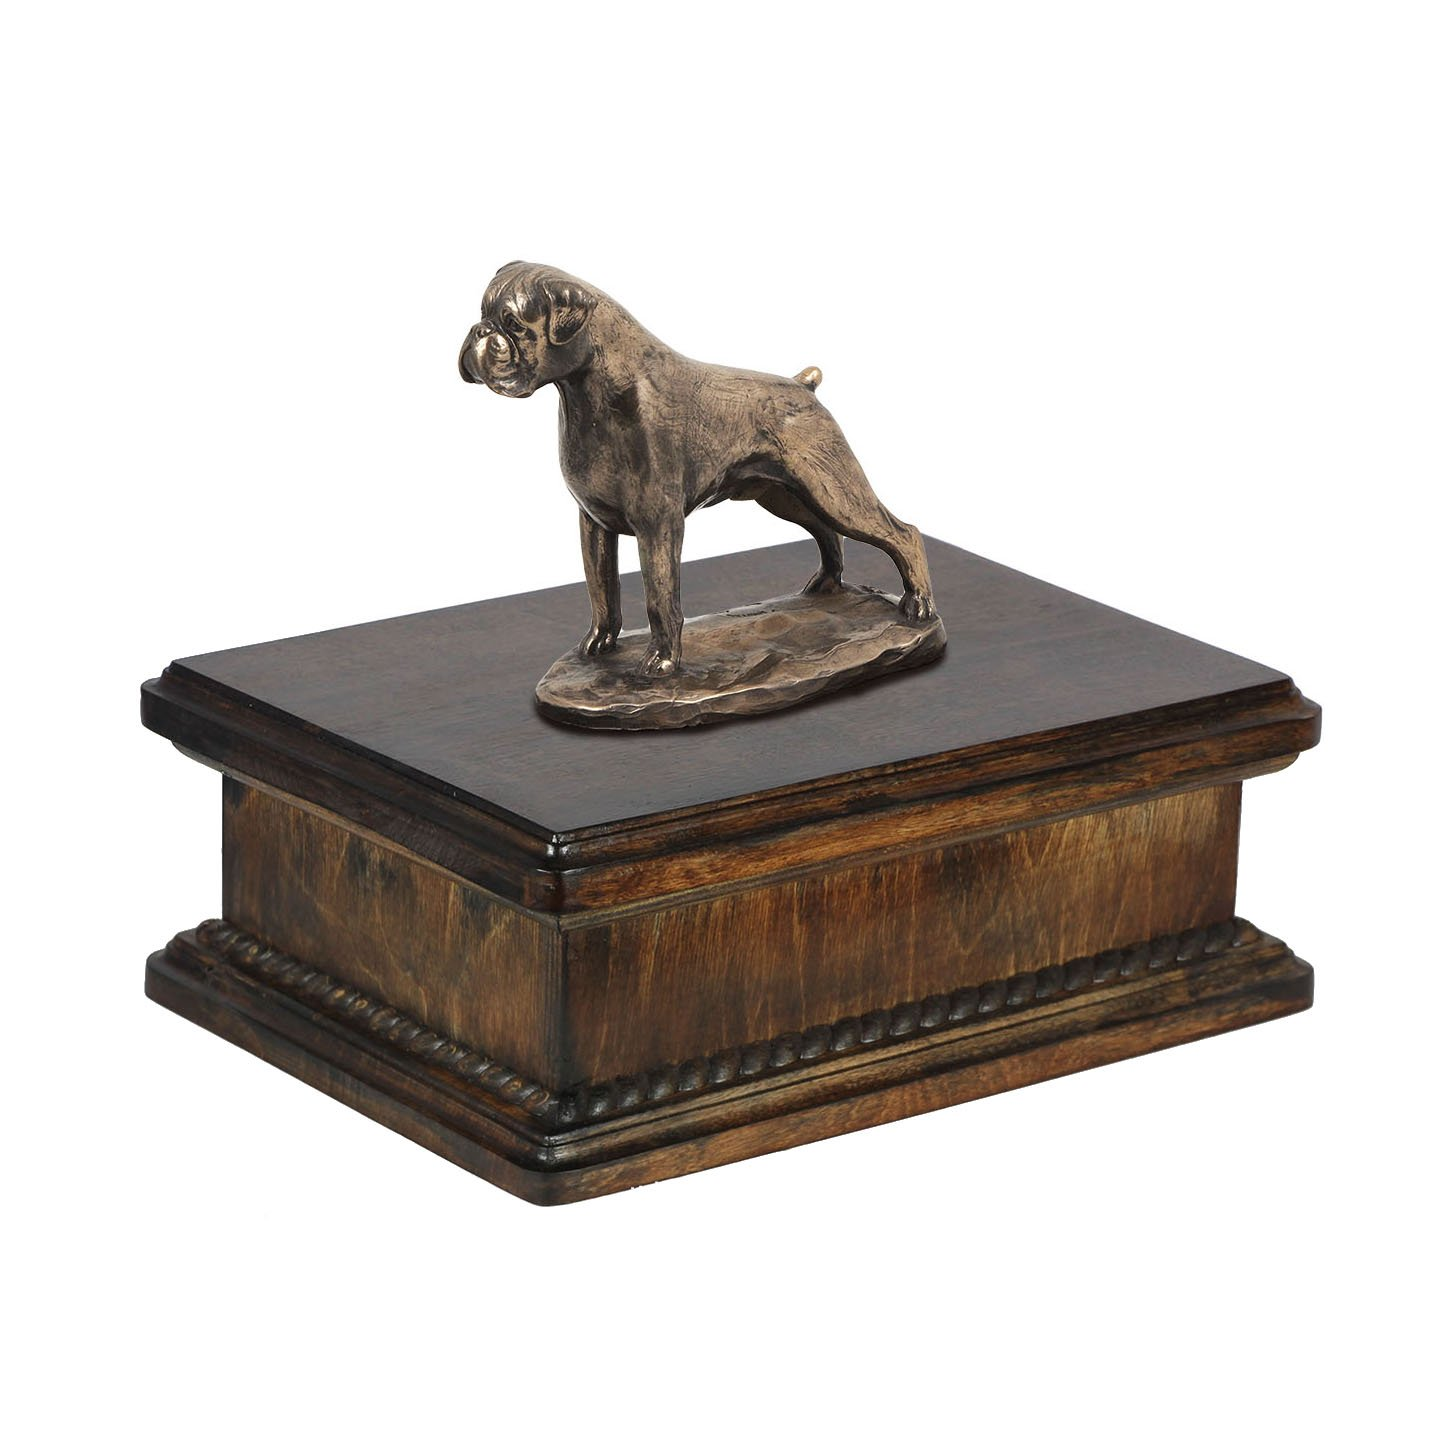 Boxer (uncropped), memorial, urn for dog's ashes, with dog statue, exclusive, ArtDog